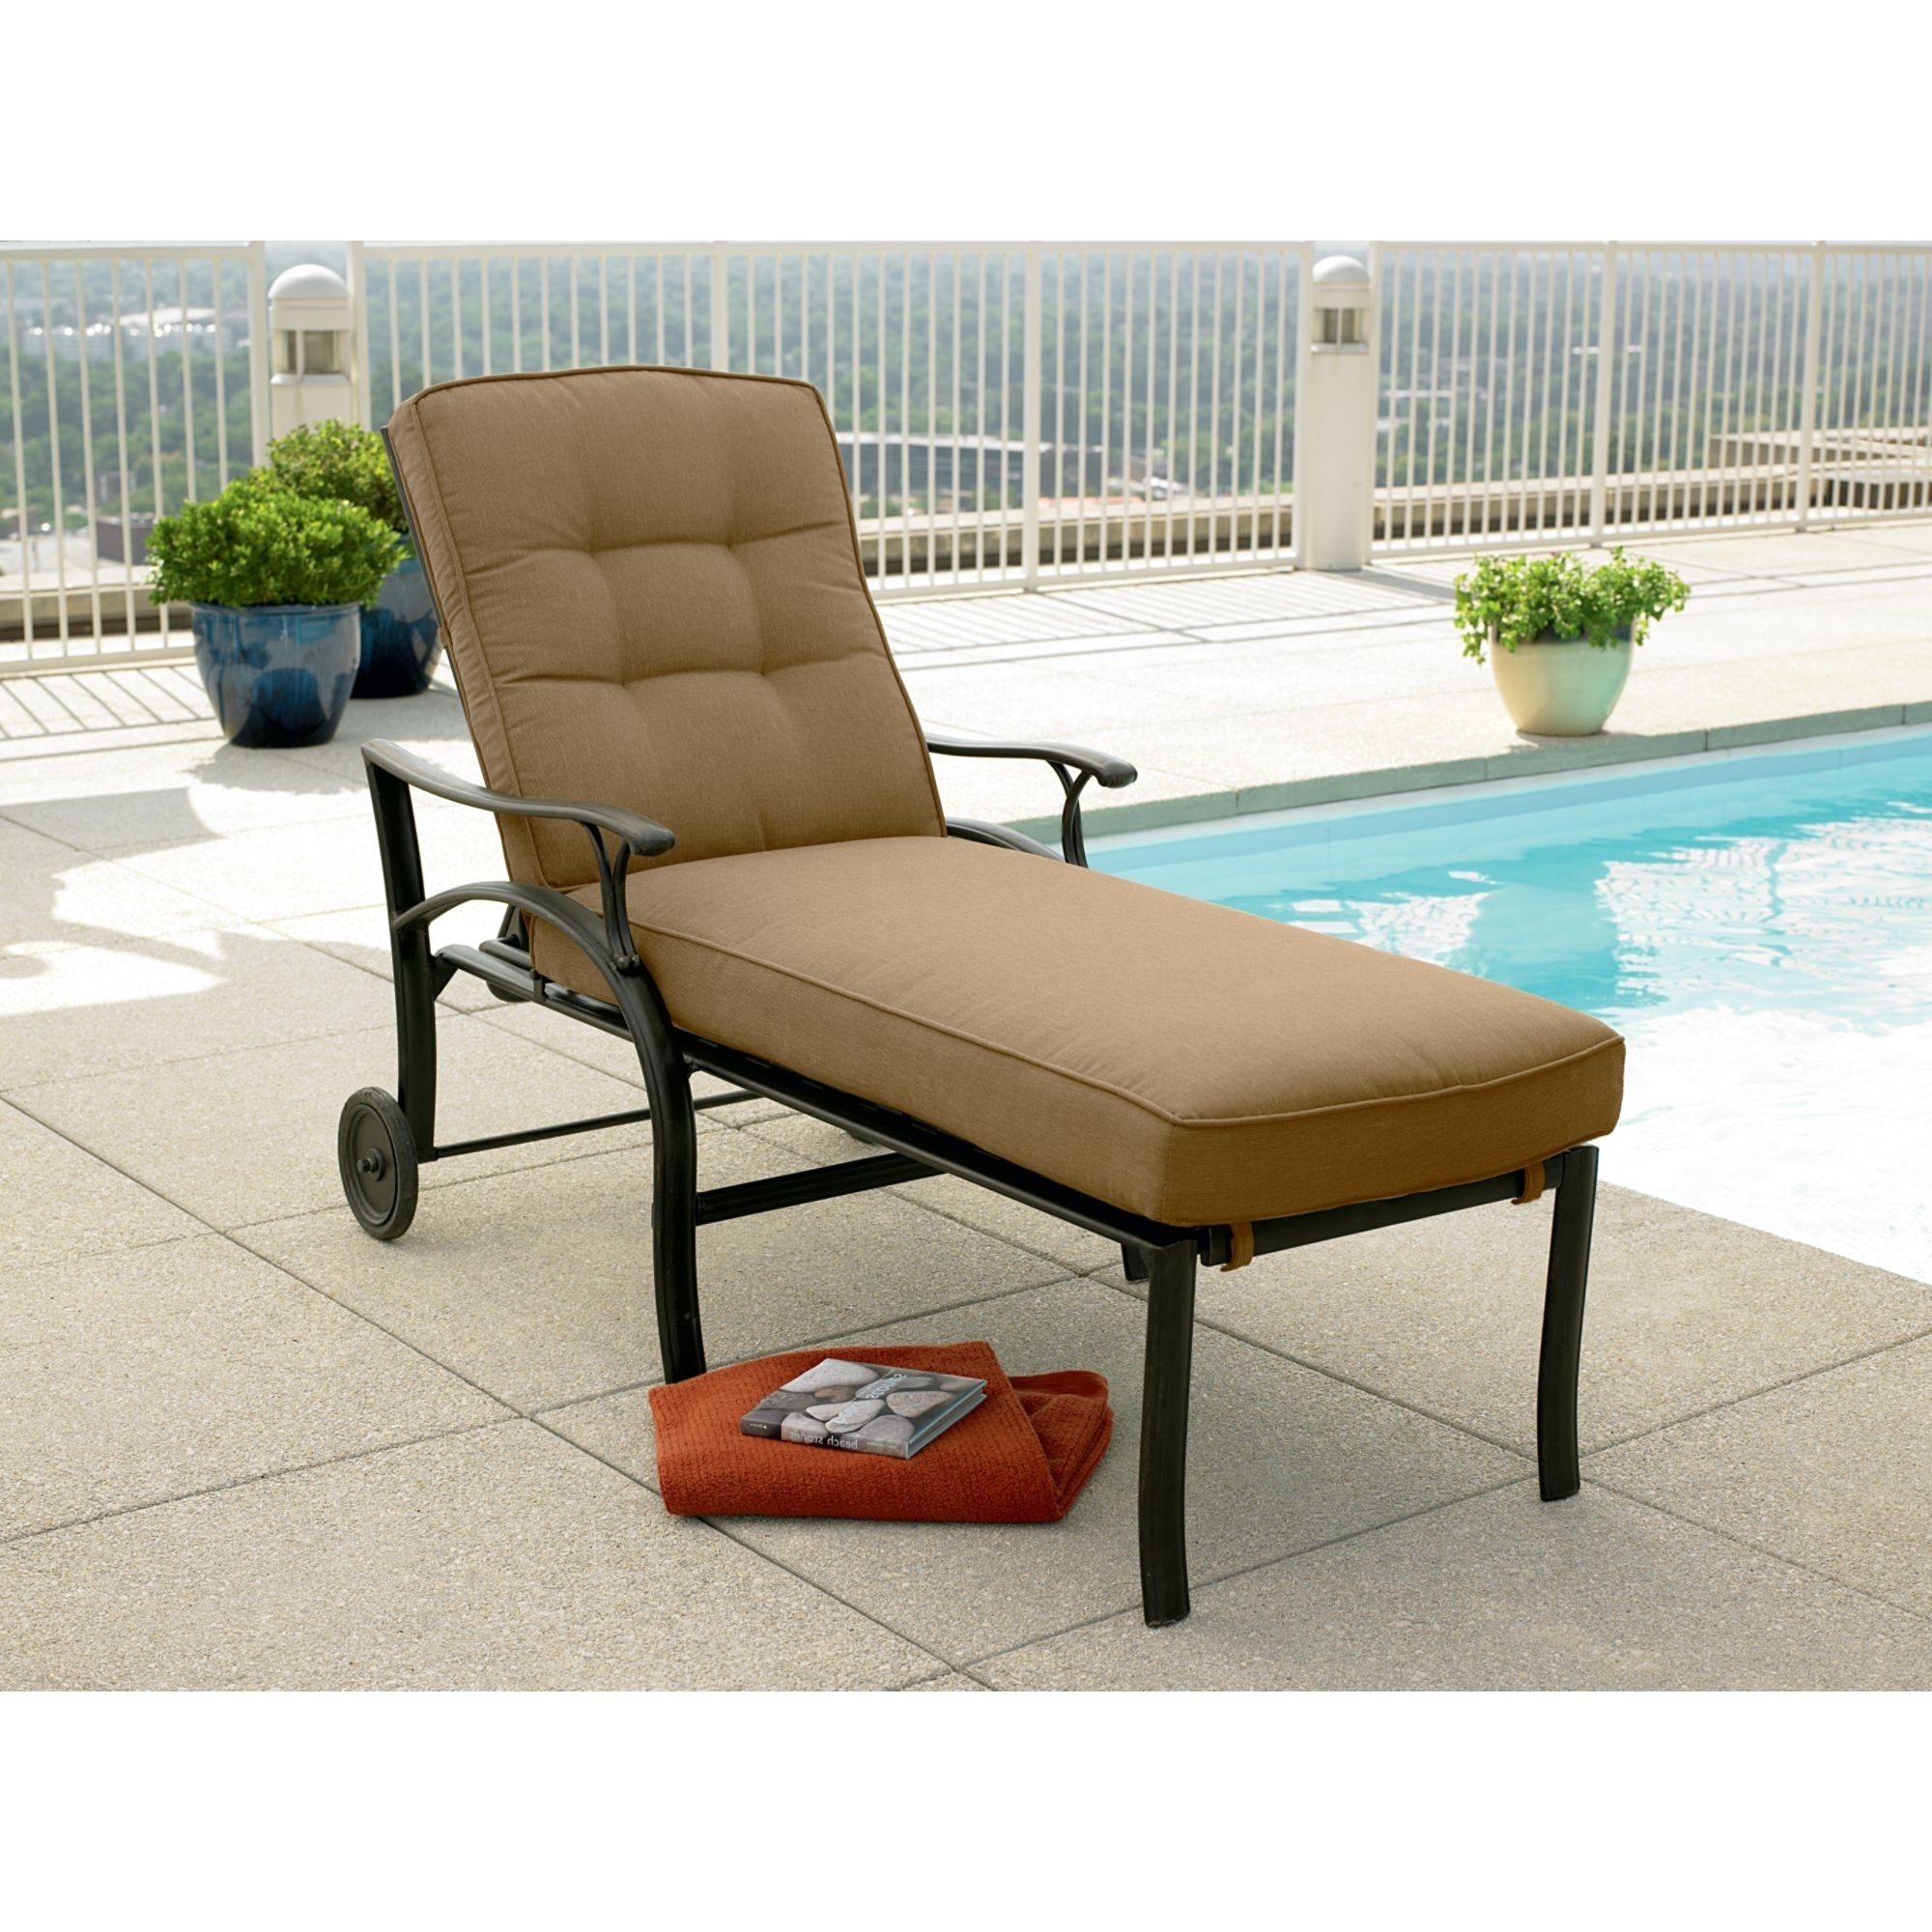 Lazy Boy Chaise Lounges With Regard To Trendy Furniture: Patio Chaise Lounge Chairs Walmart Lounges With Pool (View 7 of 15)